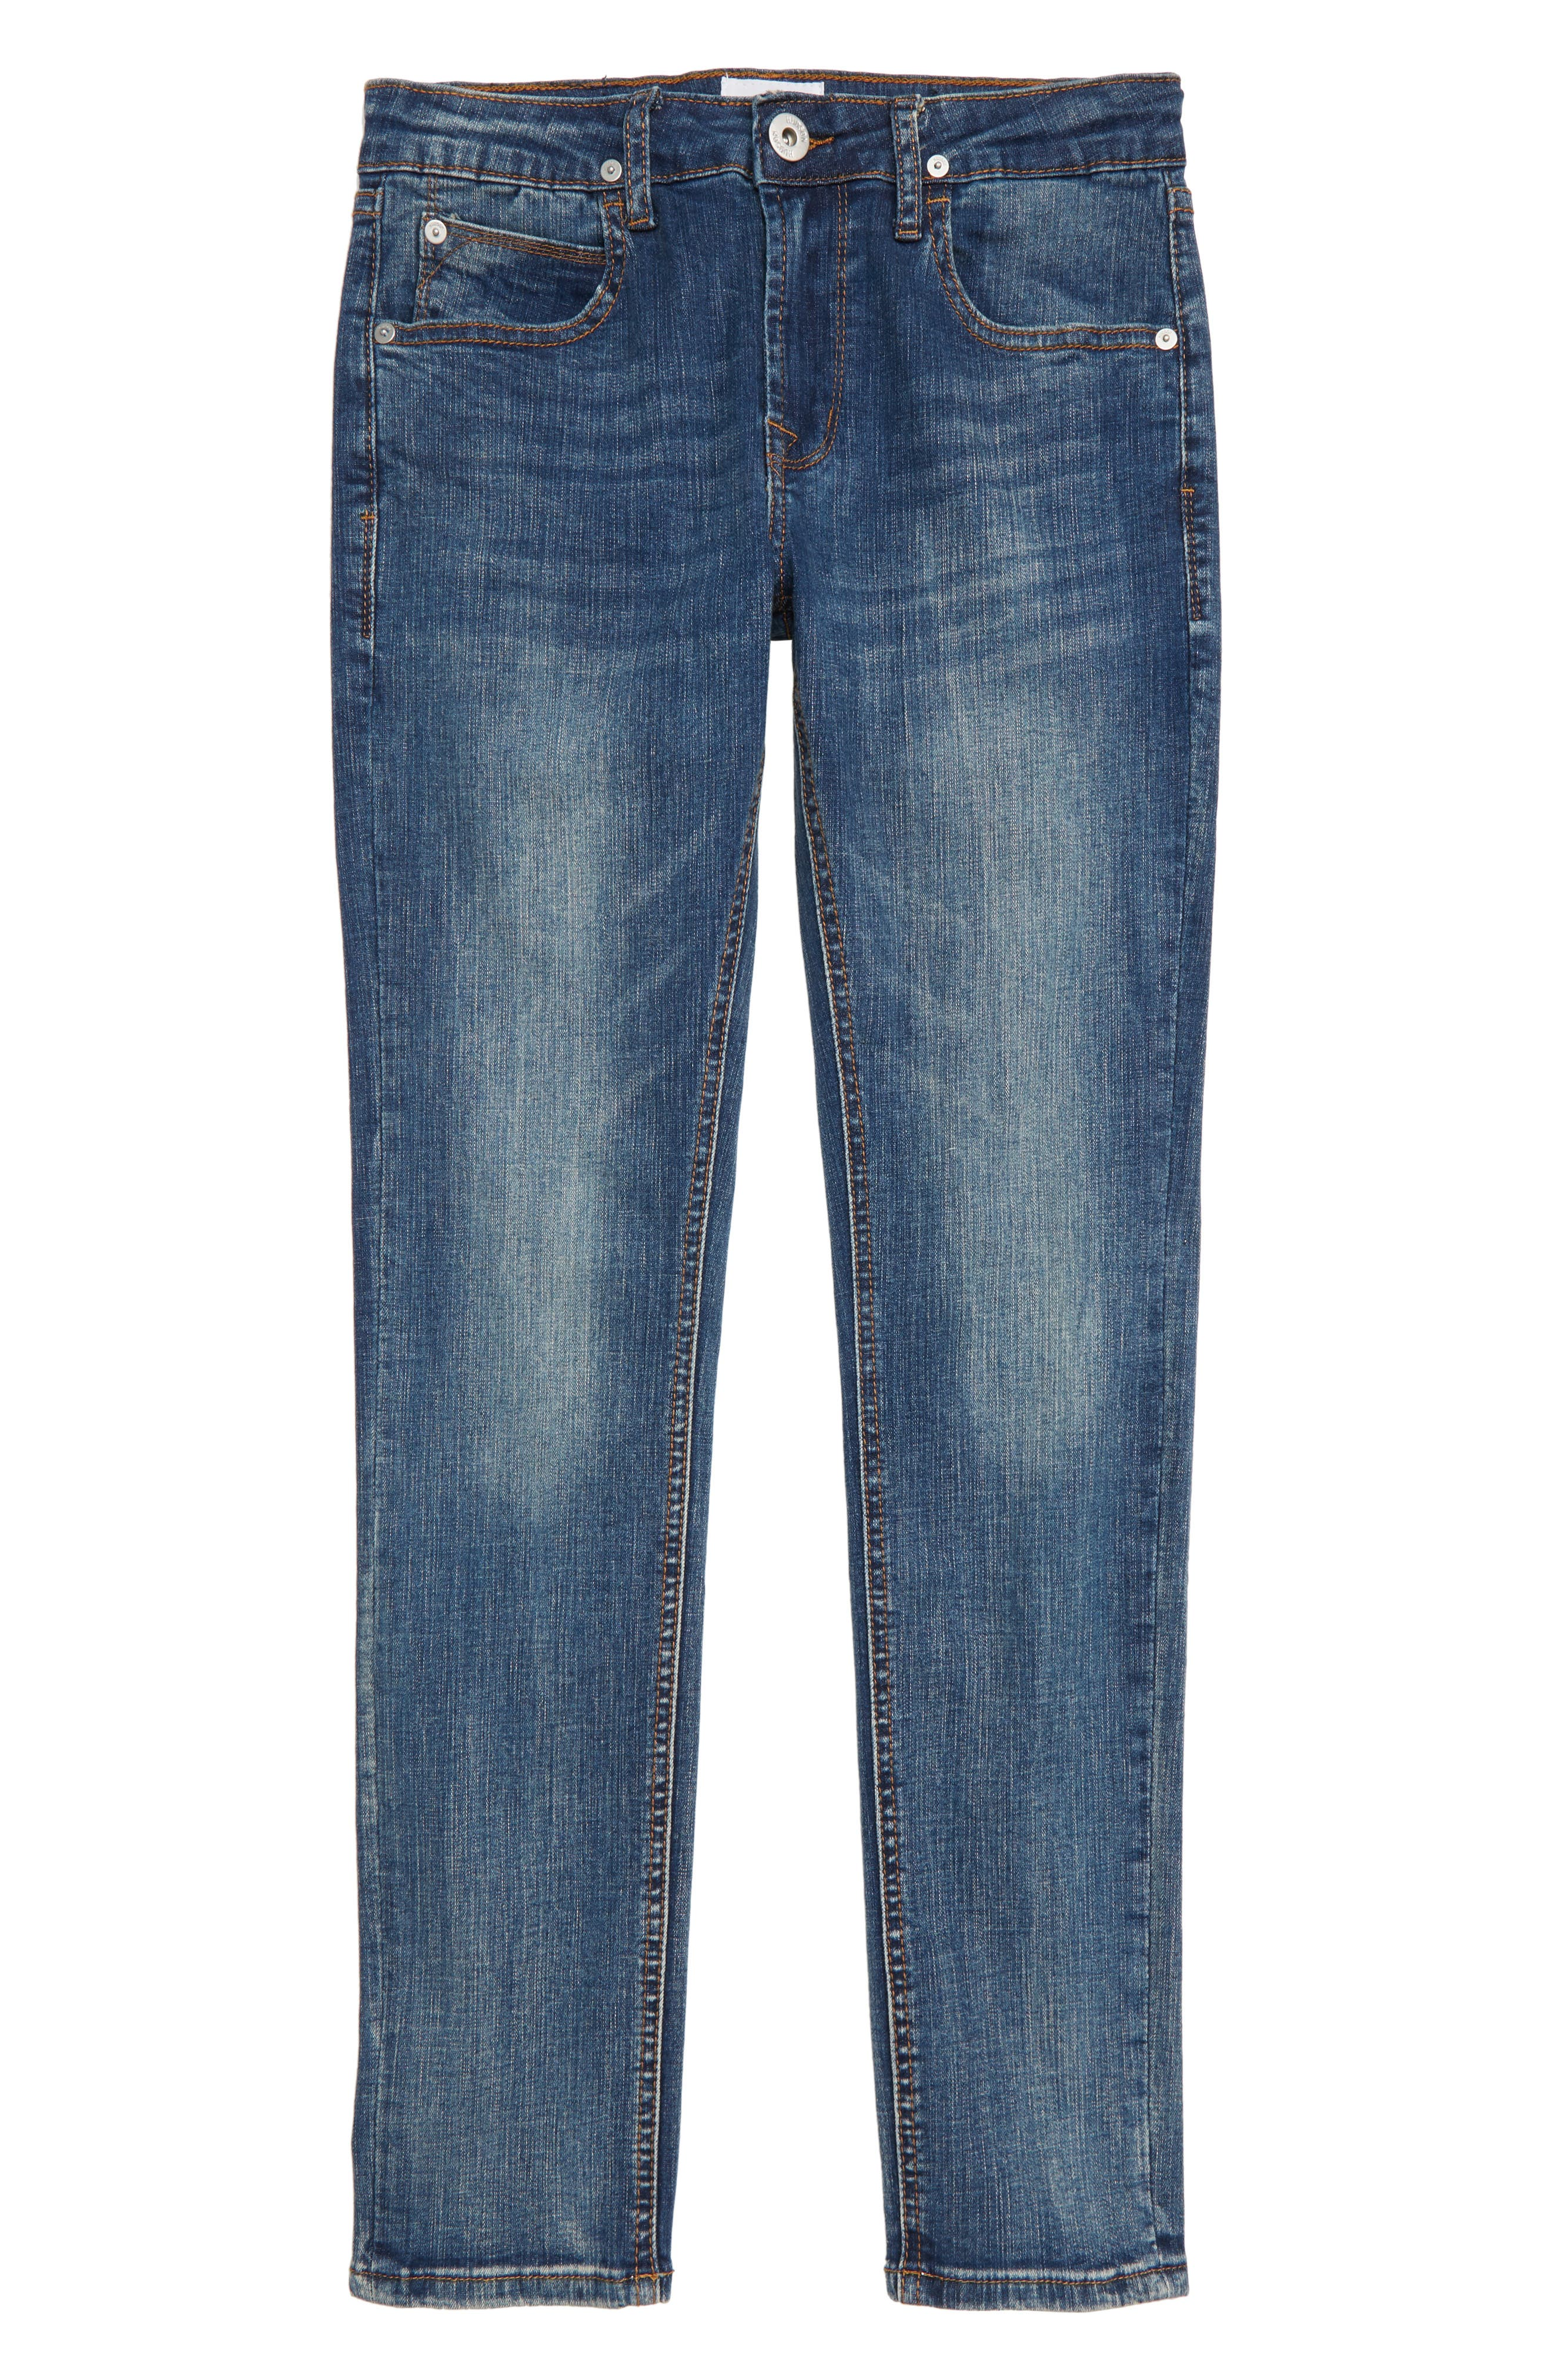 Jude Skinny Jeans,                             Main thumbnail 1, color,                             499